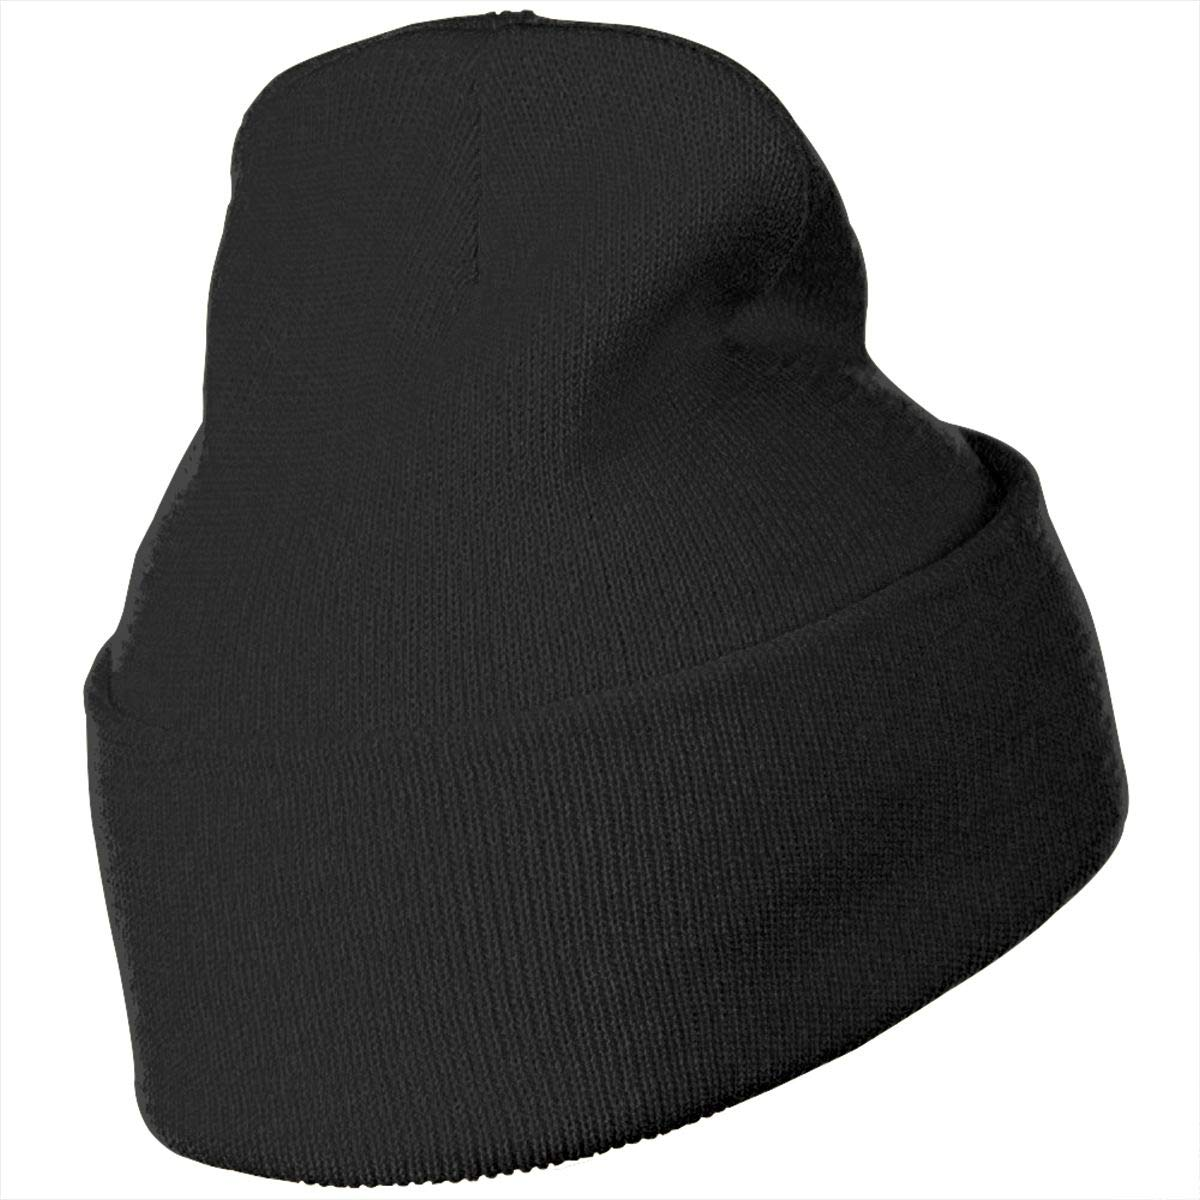 SARMY Cute Face Penguin Winter Wool Cap Warm Beanies Knitted Hat